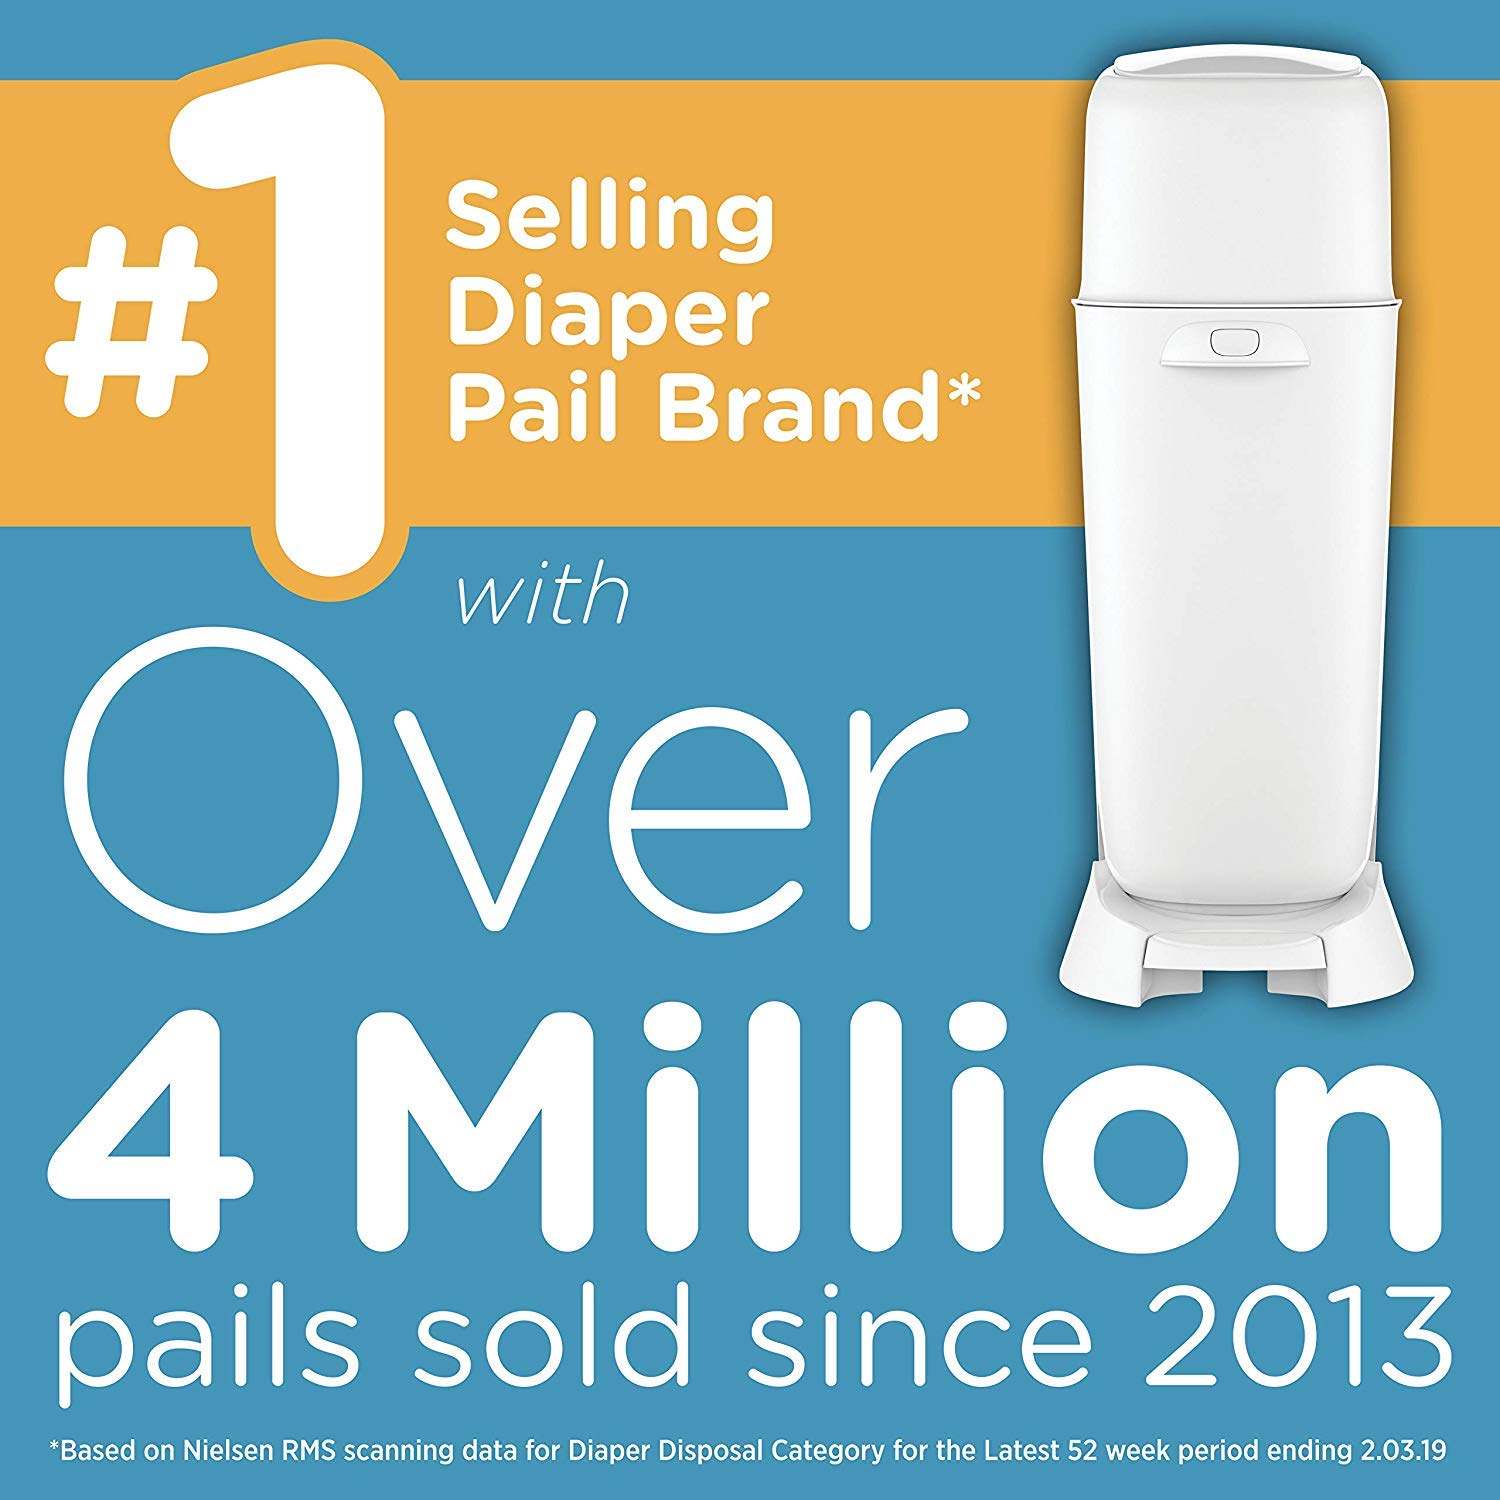 Playtex Diaper Genie Complete Diaper Pail, Fully Assembled, with Odor Lock Technology, Includes 1 Pail and 1 Refill, Blue